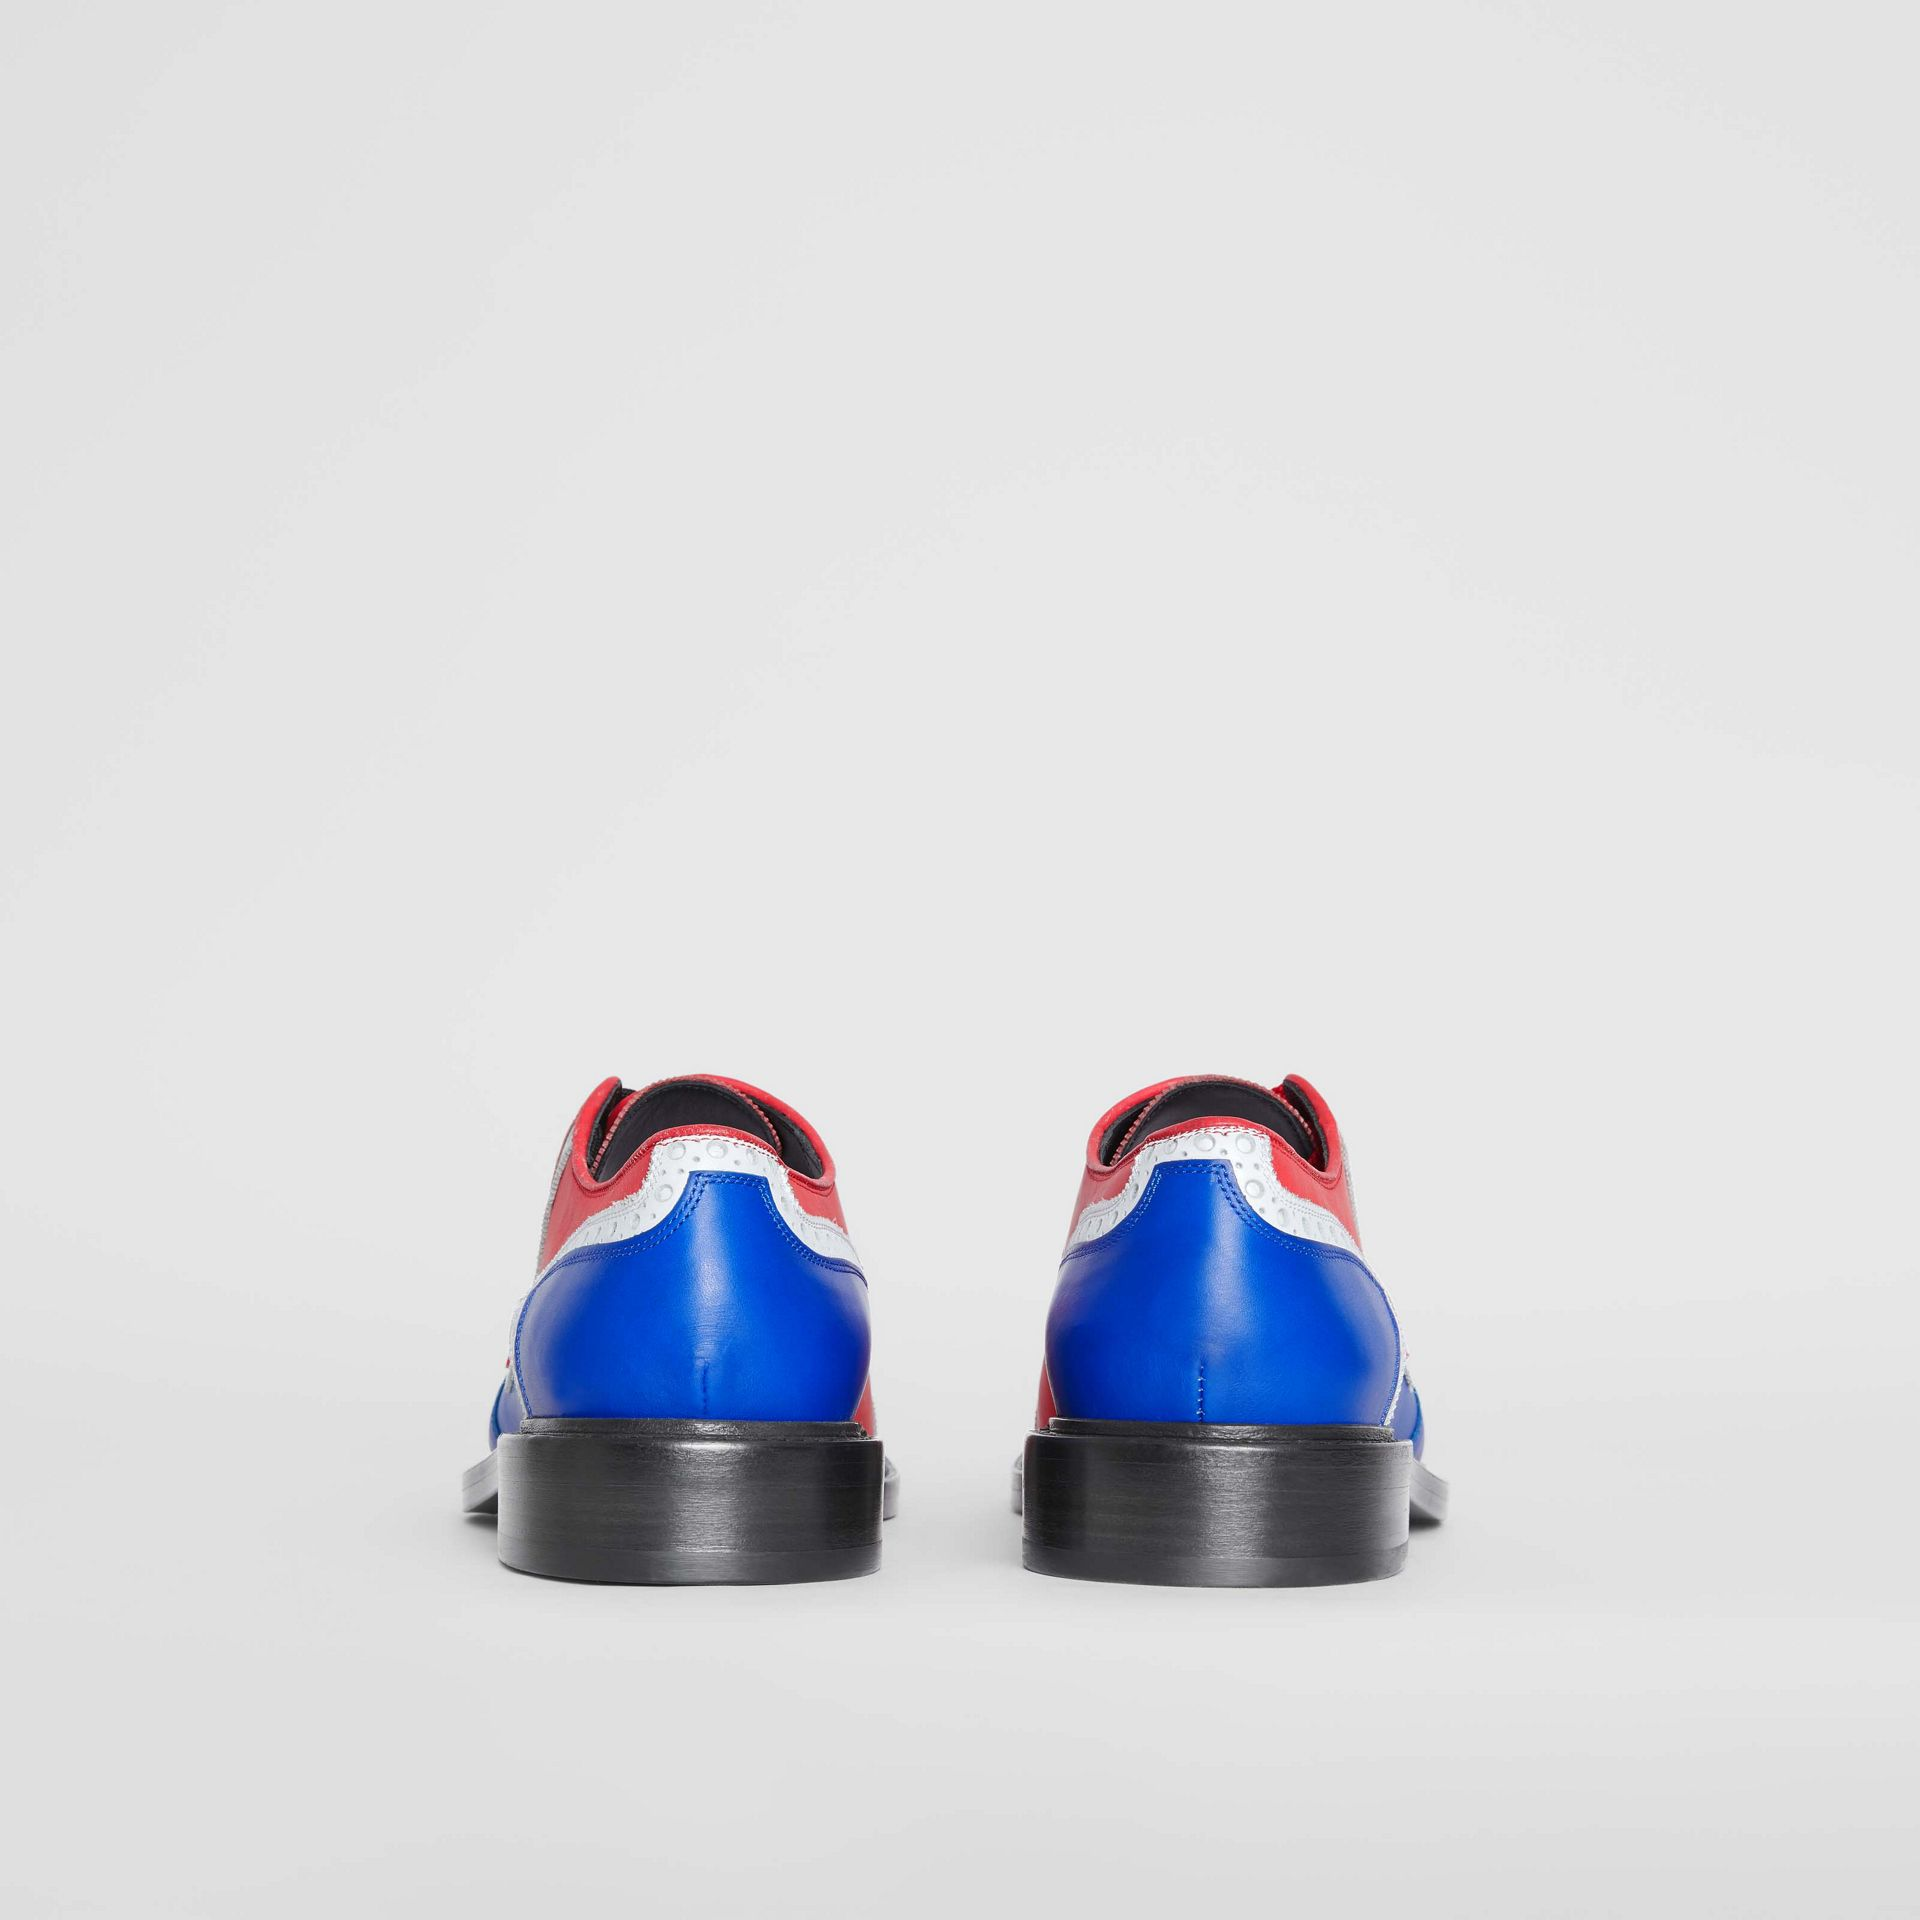 Asymmetric Closure Tri-tone Leather Brogues in Blue/red - Men | Burberry Australia - gallery image 4